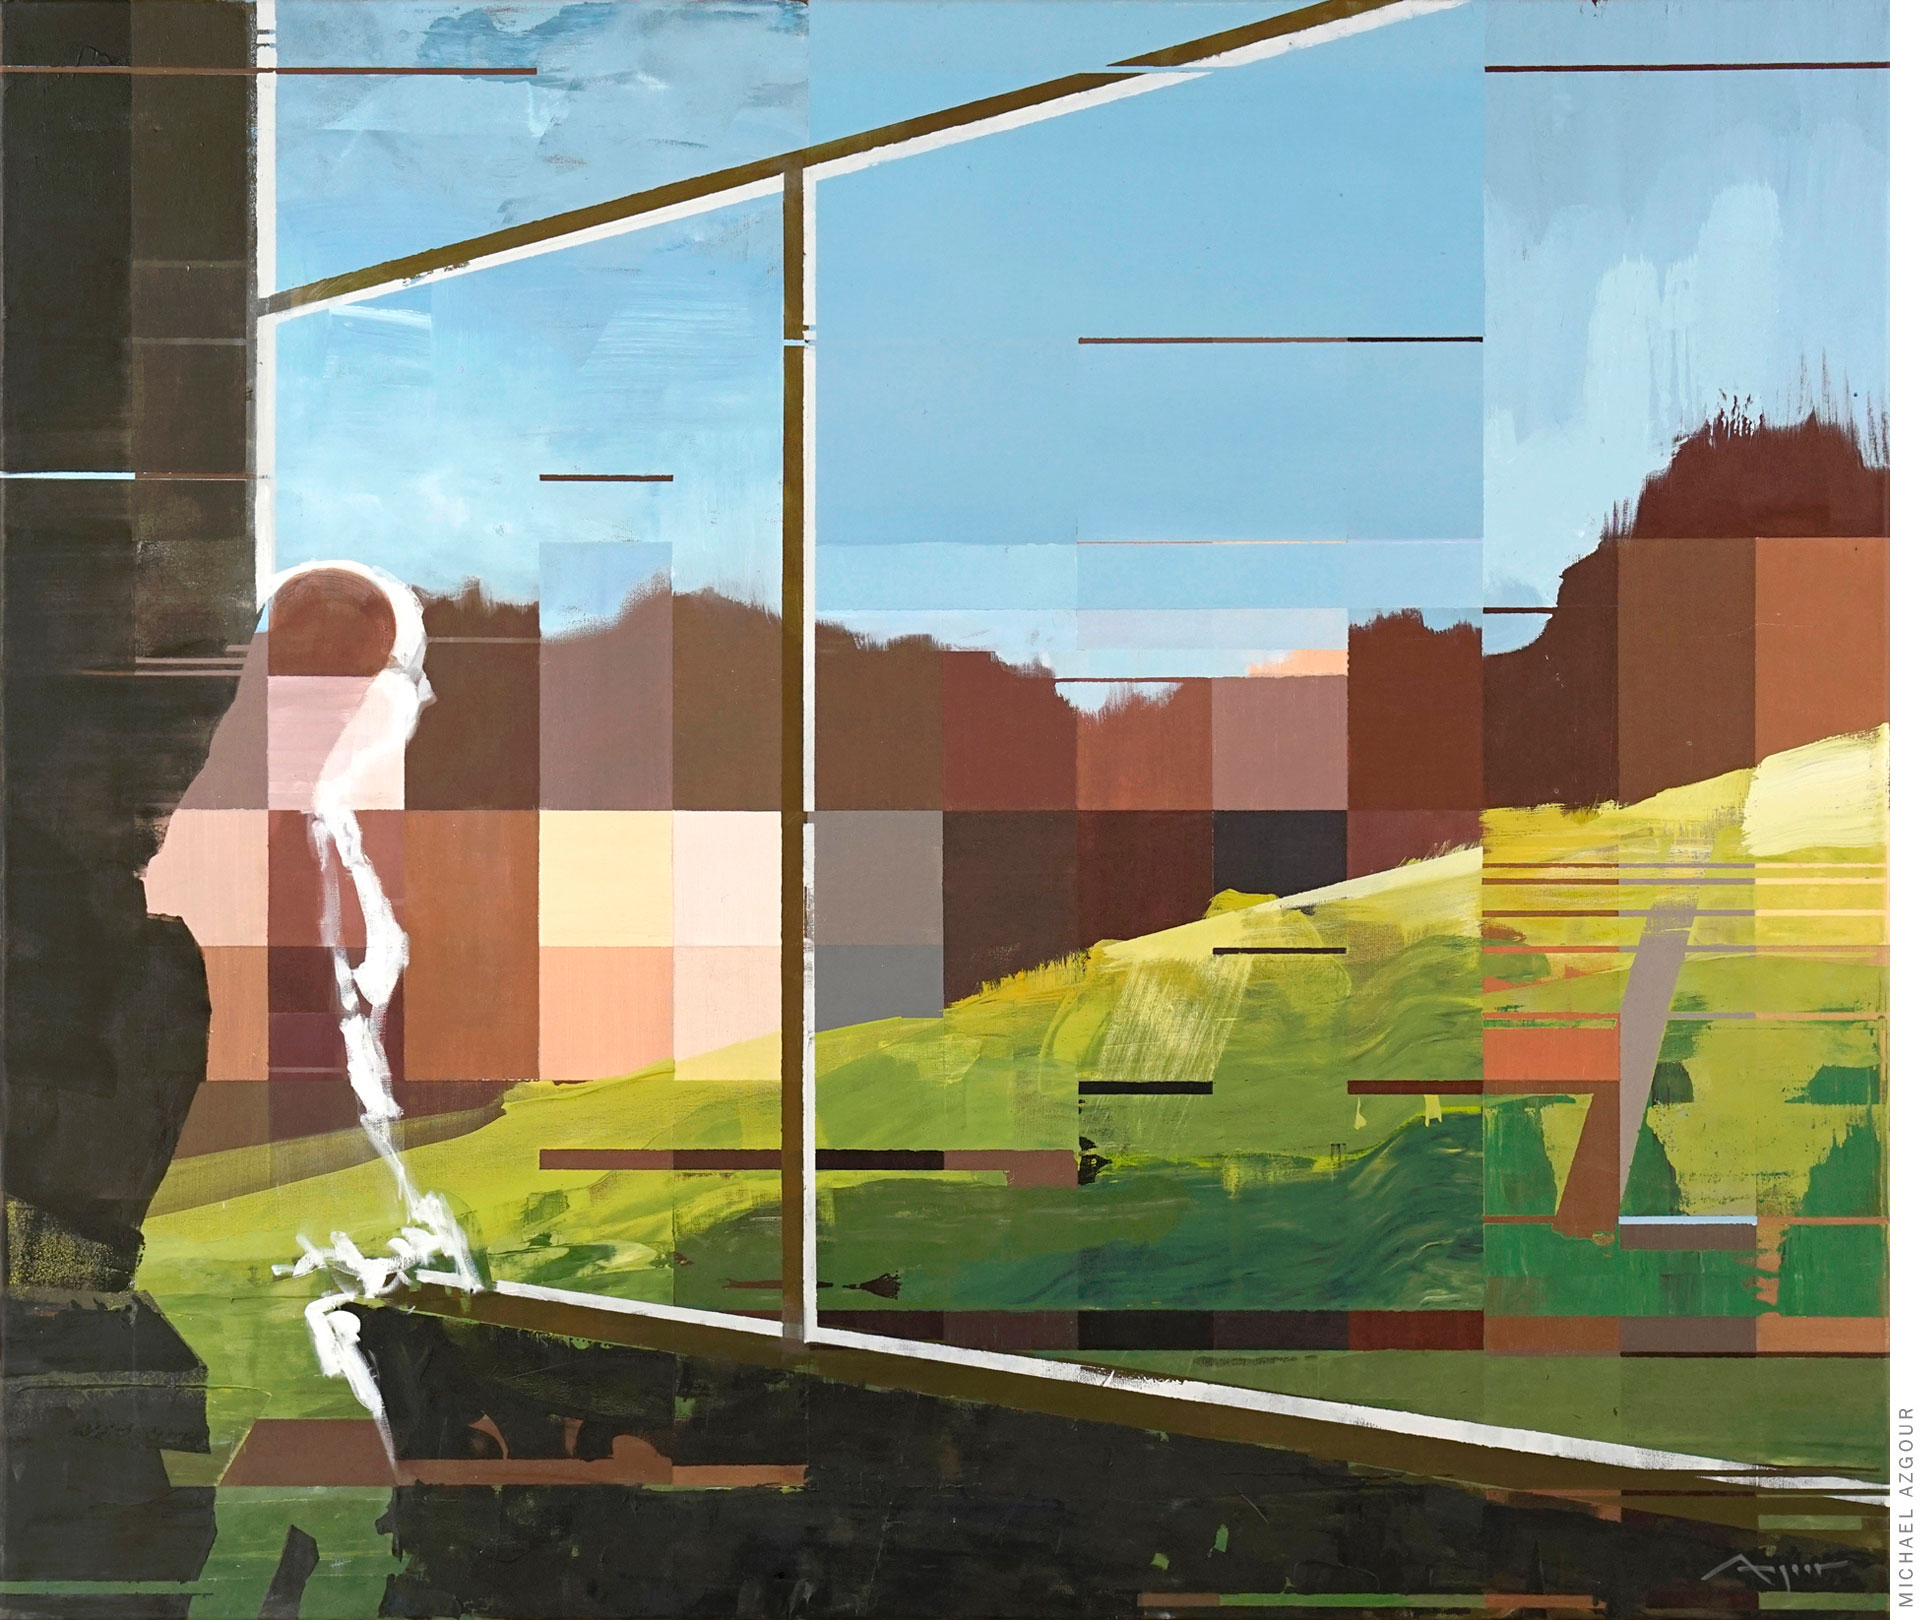 Painting titled Kreuzberg depicting a woman looking out of a window toward a digital reality